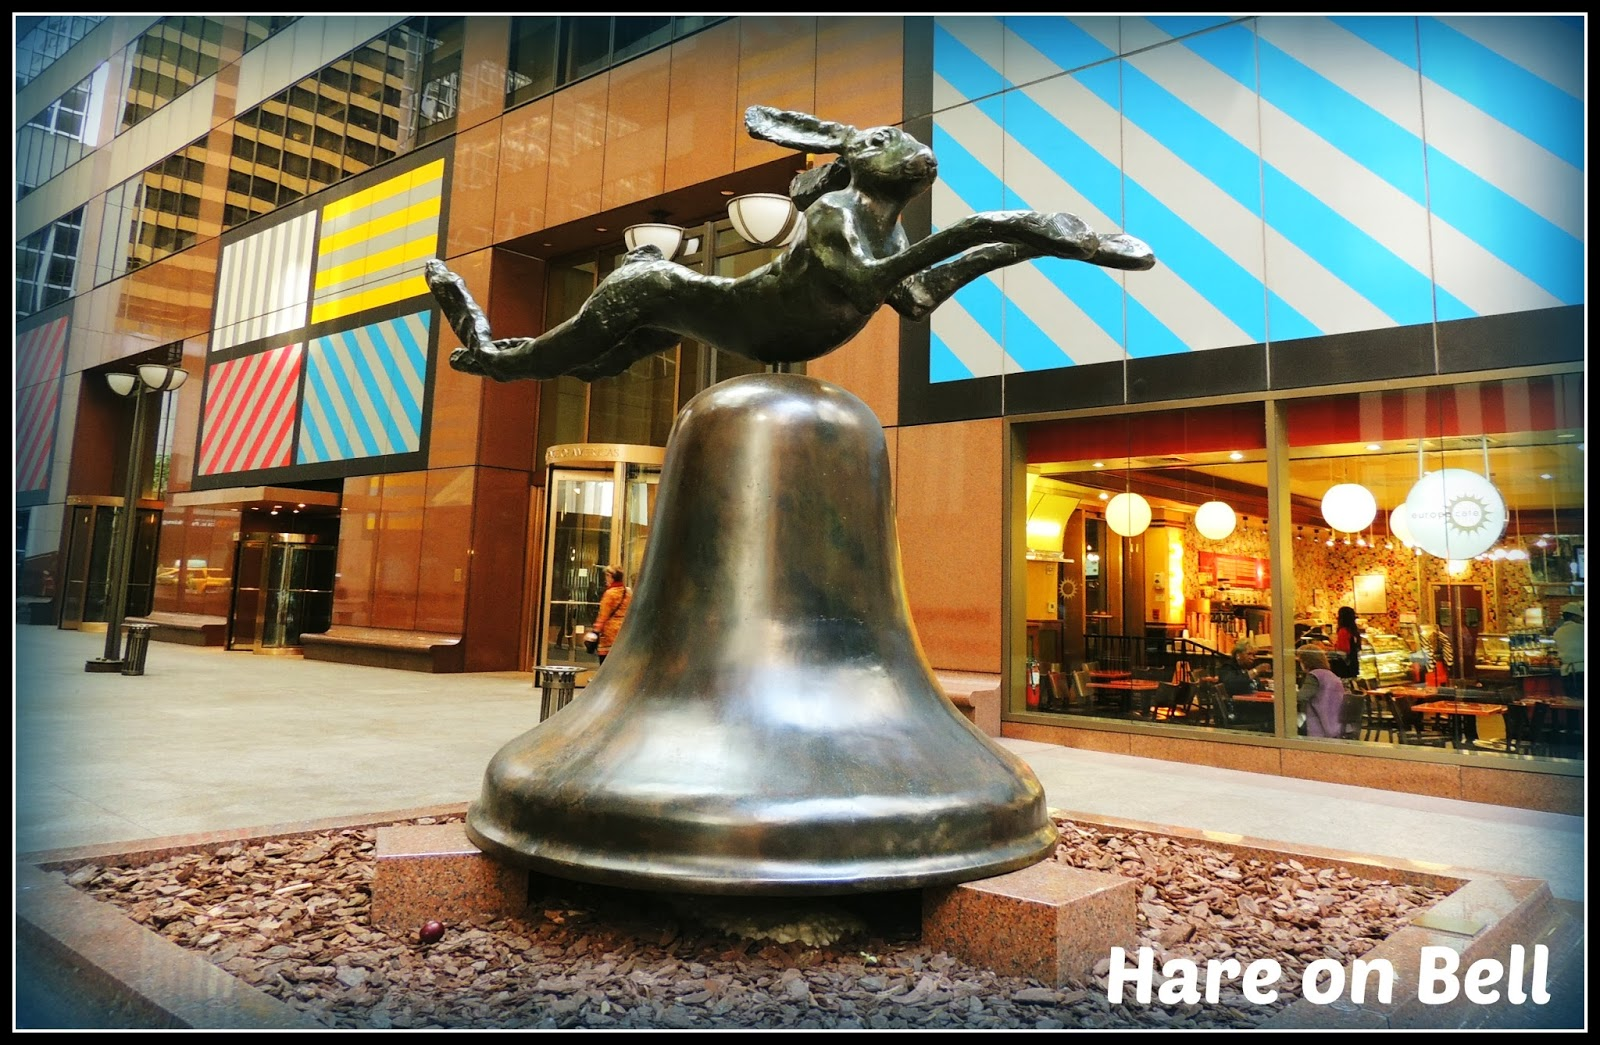 "NY en 3 Días: Escultura de Barry Flanagan ""Hare on Bell"""